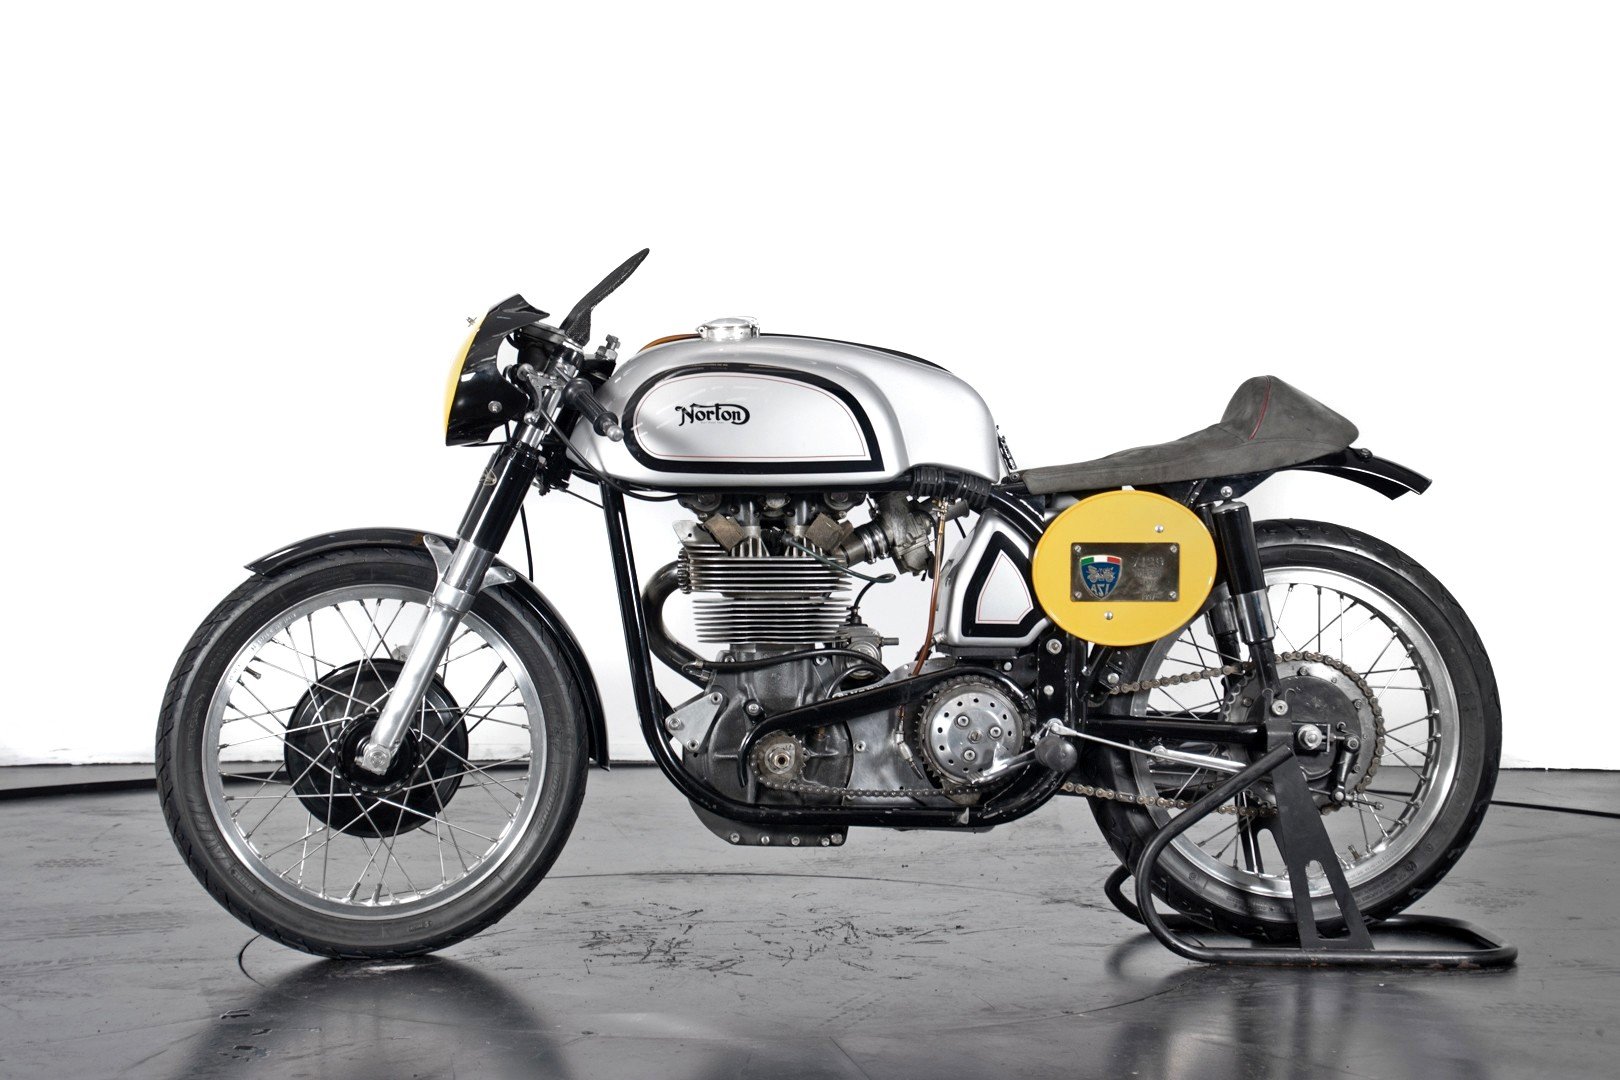 Vintage (used) motorcycles' values: 1957 Norton Manx 500, approx. $50,877. for sale